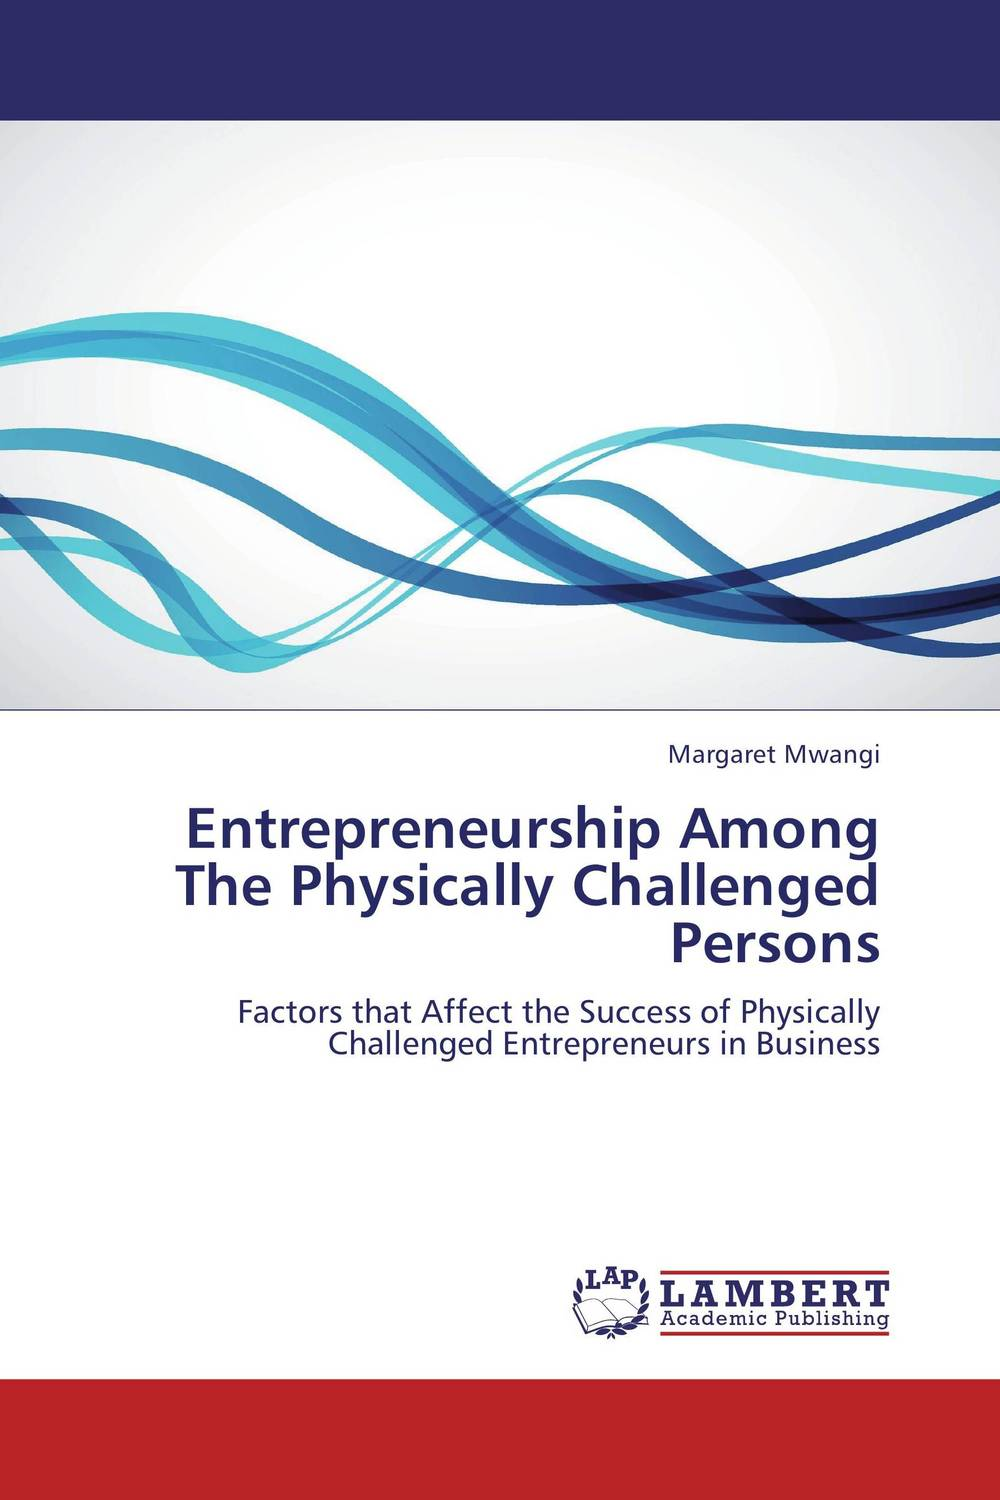 Entrepreneurship Among The Physically Challenged Persons